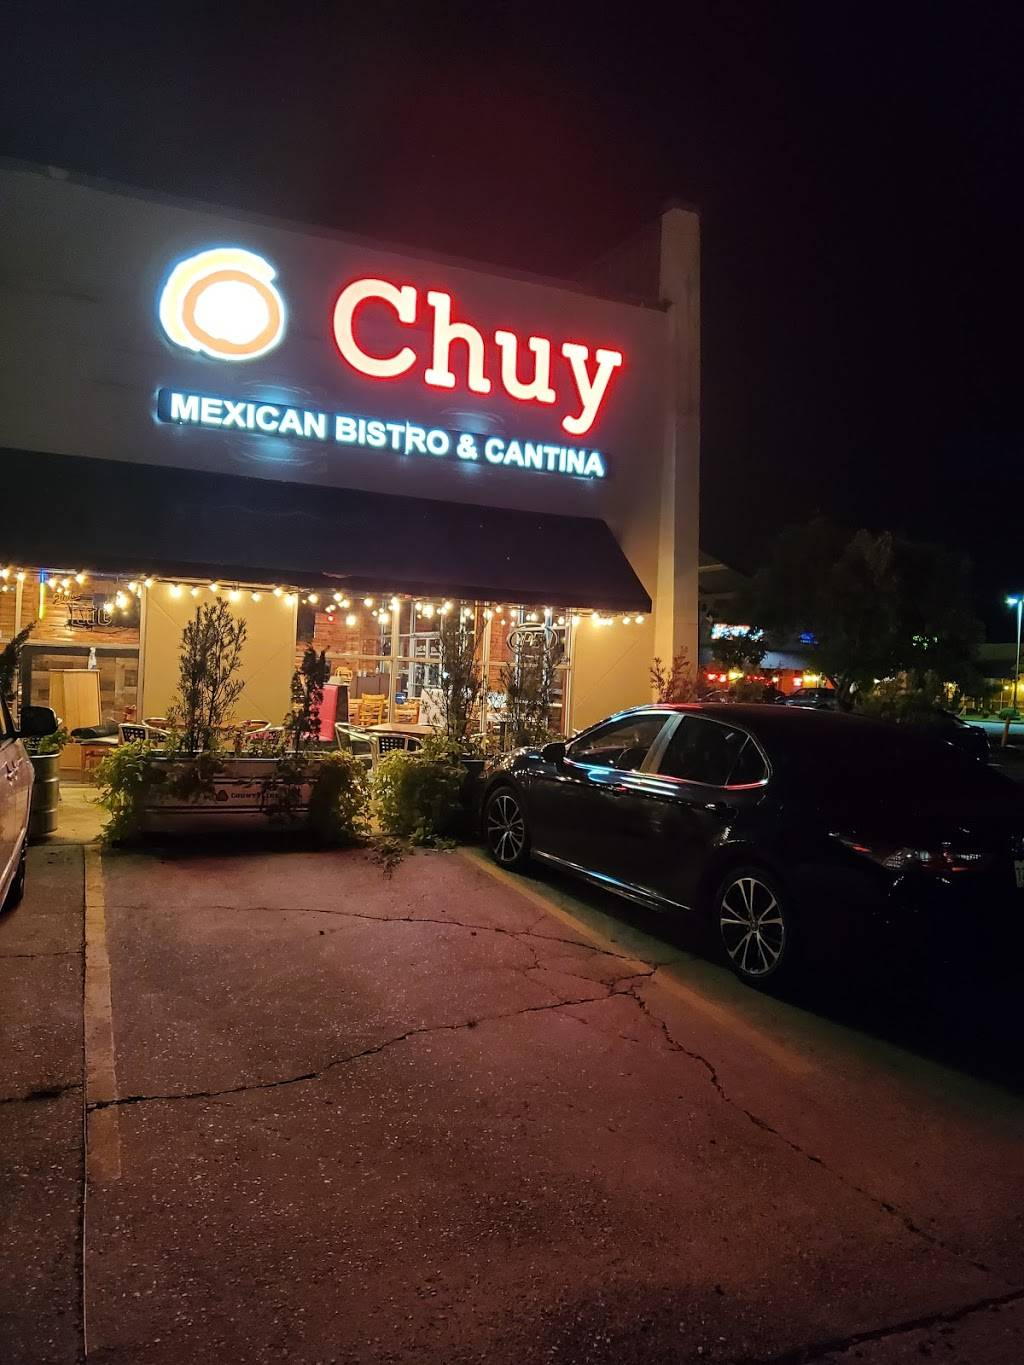 Chuy Mexican Bistro & Cantina | restaurant | 2999 U.S. Hwy 190, Mandeville, LA 70471, USA | 9857782298 OR +1 985-778-2298